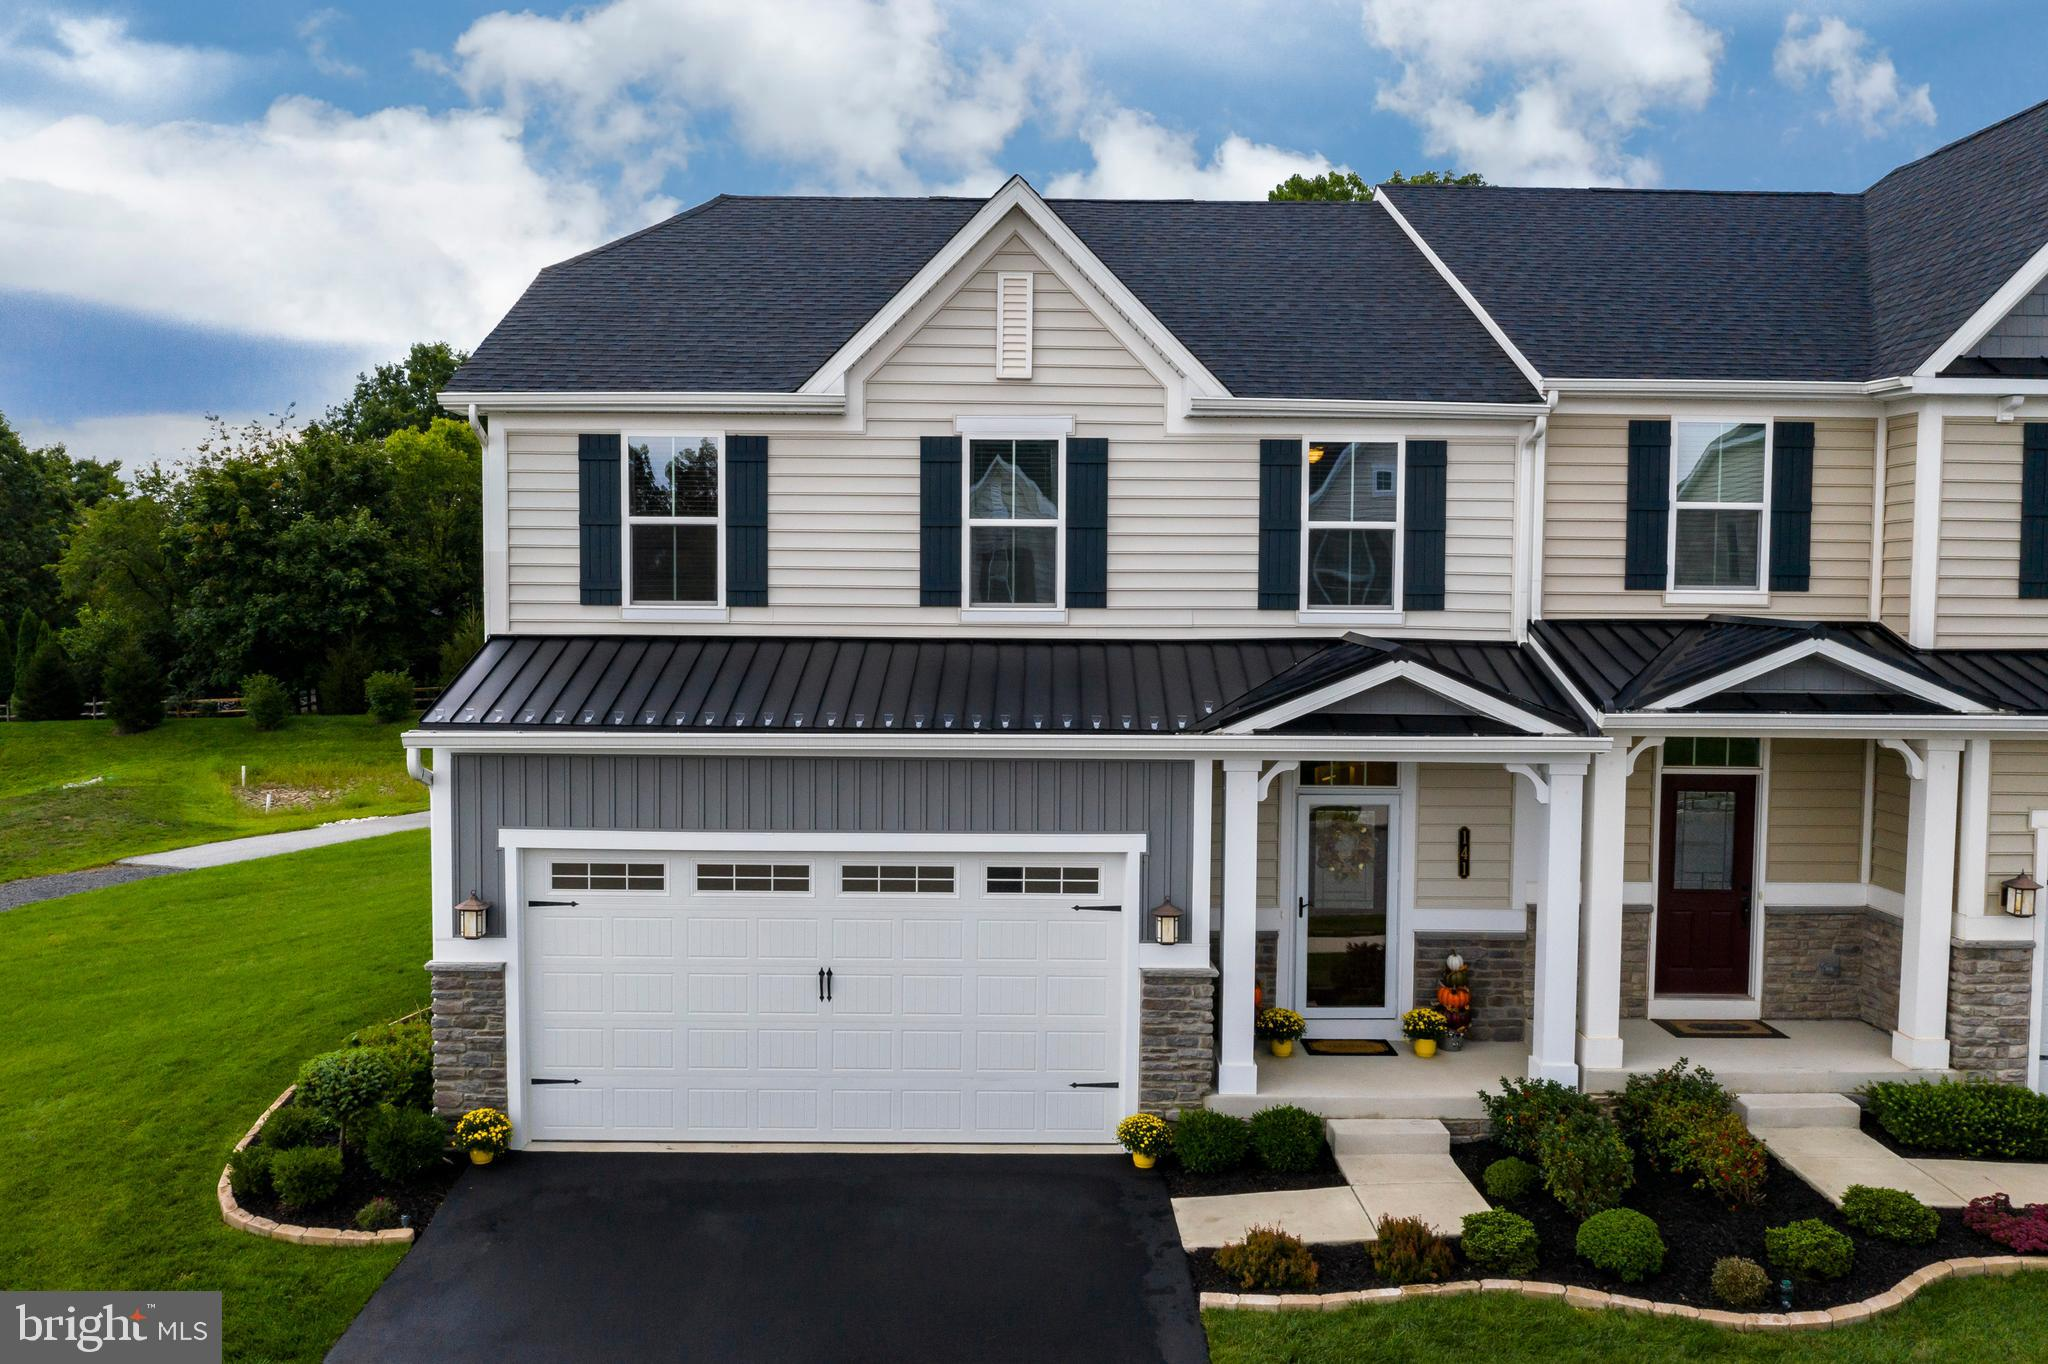 "Welcome home to this bright and beautiful Misthaven model in Collegeville's luxurious Highpointe at Providence community! This like-new carriage home has a prime location backing up to a tree line and walking trail, boasts a 2 car garage, and has incredible curb appeal with professional landscaping and thoughtful exterior finishings. From the moment you enter from the covered front porch, you can tell that the current owners have taken incredible care of this home to keep the new construction feel. A powder room and coat closet are conveniently located in the formal entryway with hand-scraped hardwood flooring that flows throughout the entire first level.  Large arched entryways, crown molding, and chair rails, lend a regal feel to the open floor plan. As you begin your tour, you come to a dining room with floor to ceiling built-ins (currently being used as a kids' playroom) and a large family room with recessed lighting and a peaceful backyard view. These rooms open to the gorgeous upgraded kitchen with granite countertops, range hood above the stove, a 4-seat custom butcher block island with pop-out microwave, beautiful ceiling-high subway backsplash to compliment the updated cabinet trim, huge single sink with goose-neck faucet, and a convenient walk-in pantry.  Just off of the kitchen is a spacious morning room with sliders to a new bluestone patio that has 2 seating walls for huge gatherings and a spot on the side for your grill! Upstairs you will find the large master suite with a walk-in closet with built-ins and a private bath with dual vanity, soaking tub, and stall shower. The second floor also has three additional right-sized bedrooms with closet built-ins and ceiling fans, a neutral full hall bath, a stunning laundry room with custom built-ins and utility sink, and upgraded carpet and padding throughout.  If you are looking for even more reasons to say ""yes"", there is an immaculate garage with epoxy floors and spray foam insulation, a whole house water softener and humidifier, an exterior drip irrigation system, a walking trail that connects between the neighboring communities, and a large side and back yard for your kids or four-legged friends. Conveniently located just minutes from Providence Town Center, Phoenixville, Oaks, King of Prussia, and all major highways, this home has it all! Schedule your showing today!"